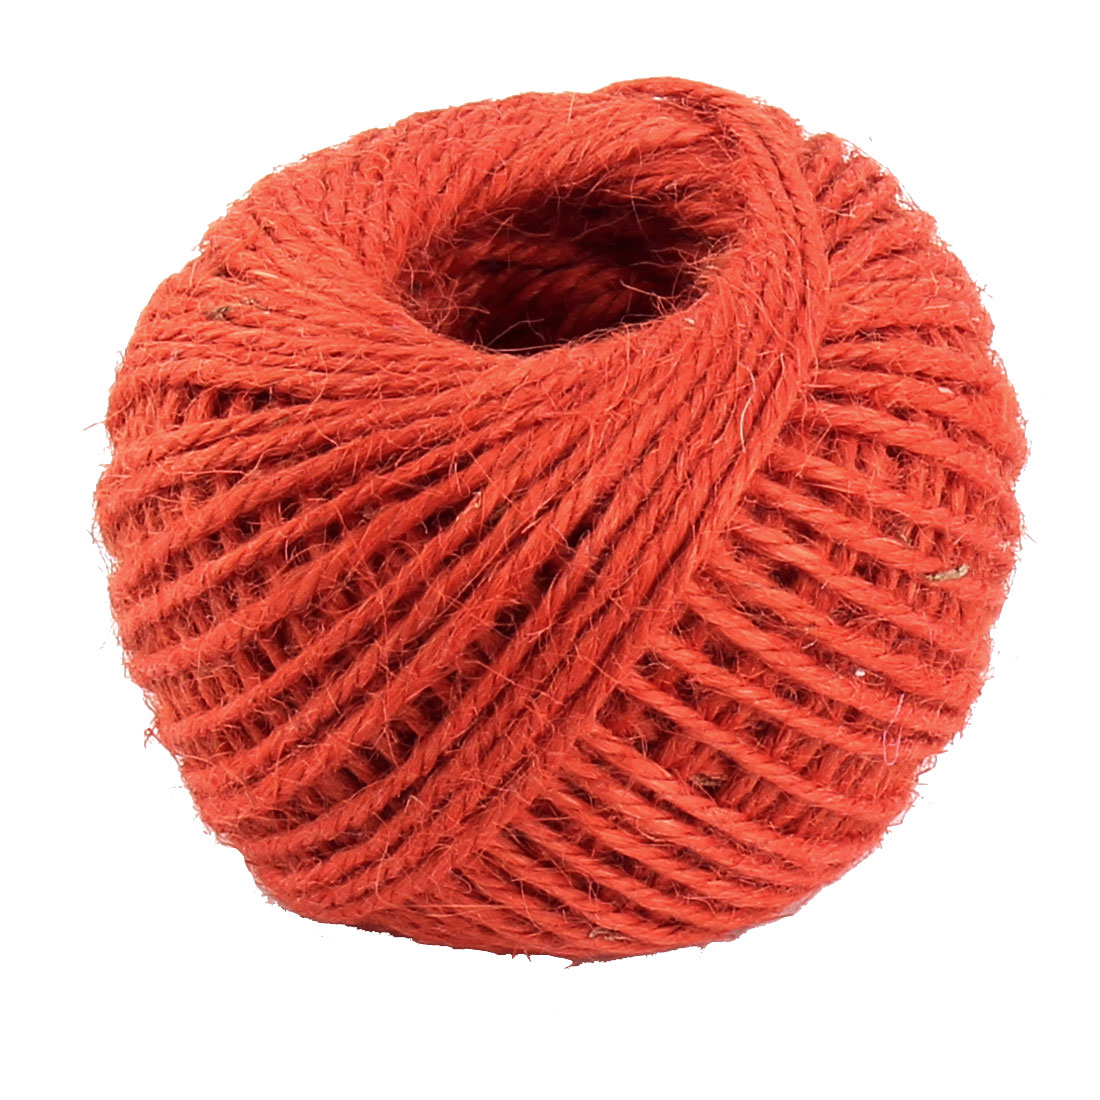 Handcraft Jute Burlap Ribbon Twine Rope Cord String Wrap Roll Orangered Sandy Brown 2mm Dia 50m Length